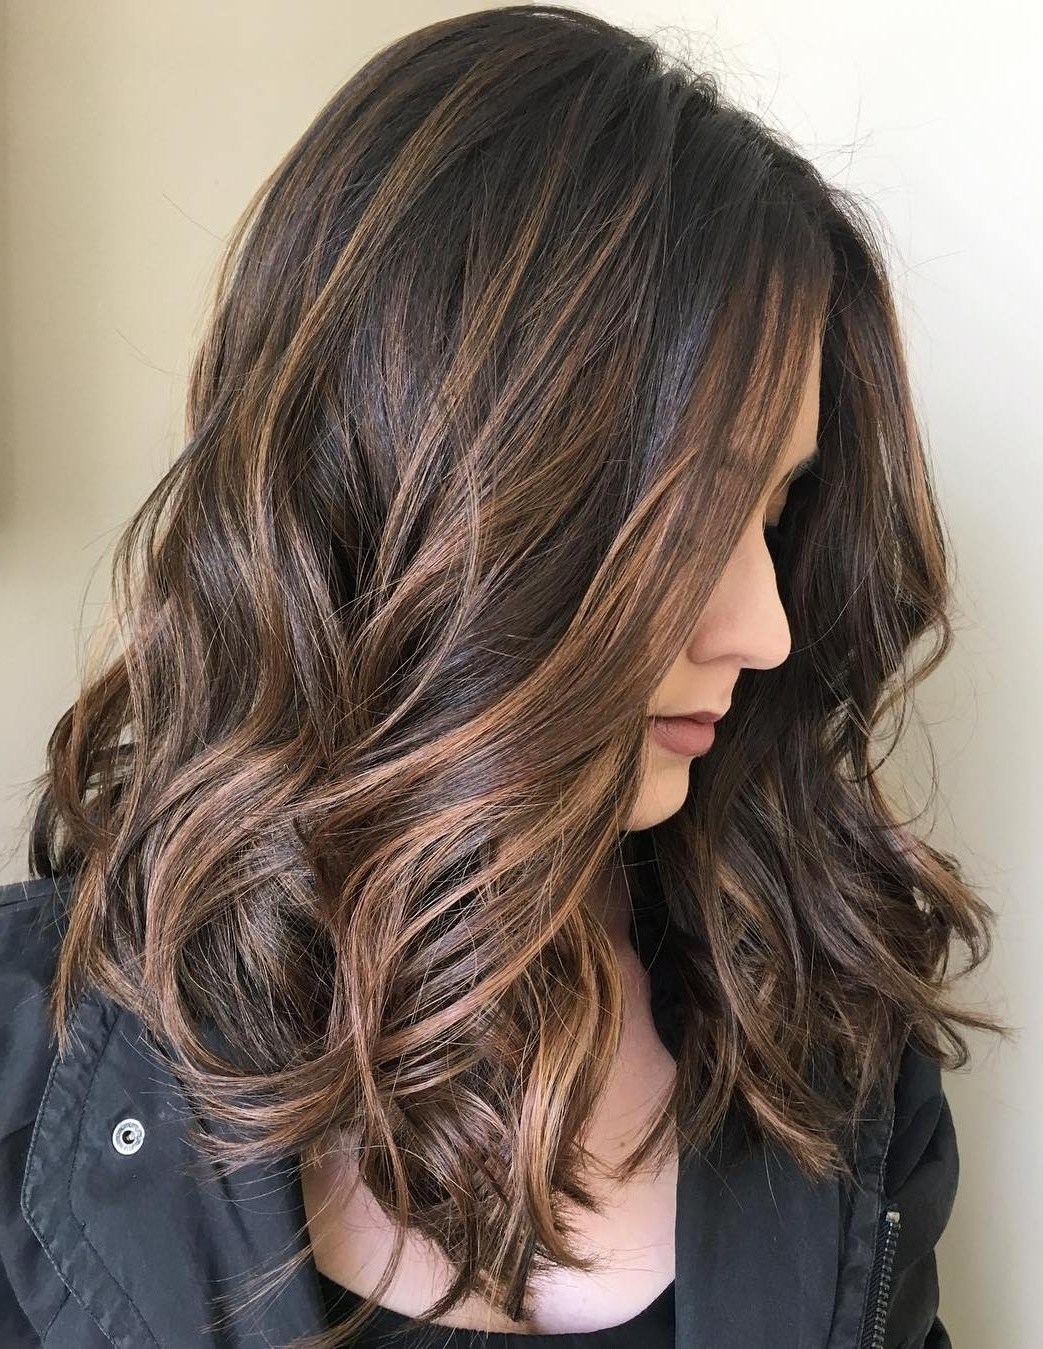 70 Balayage Hair Color Ideas With Blonde, Brown And Caramel Highlights For Latest Sunkissed Long Locks Blonde Hairstyles (View 3 of 20)